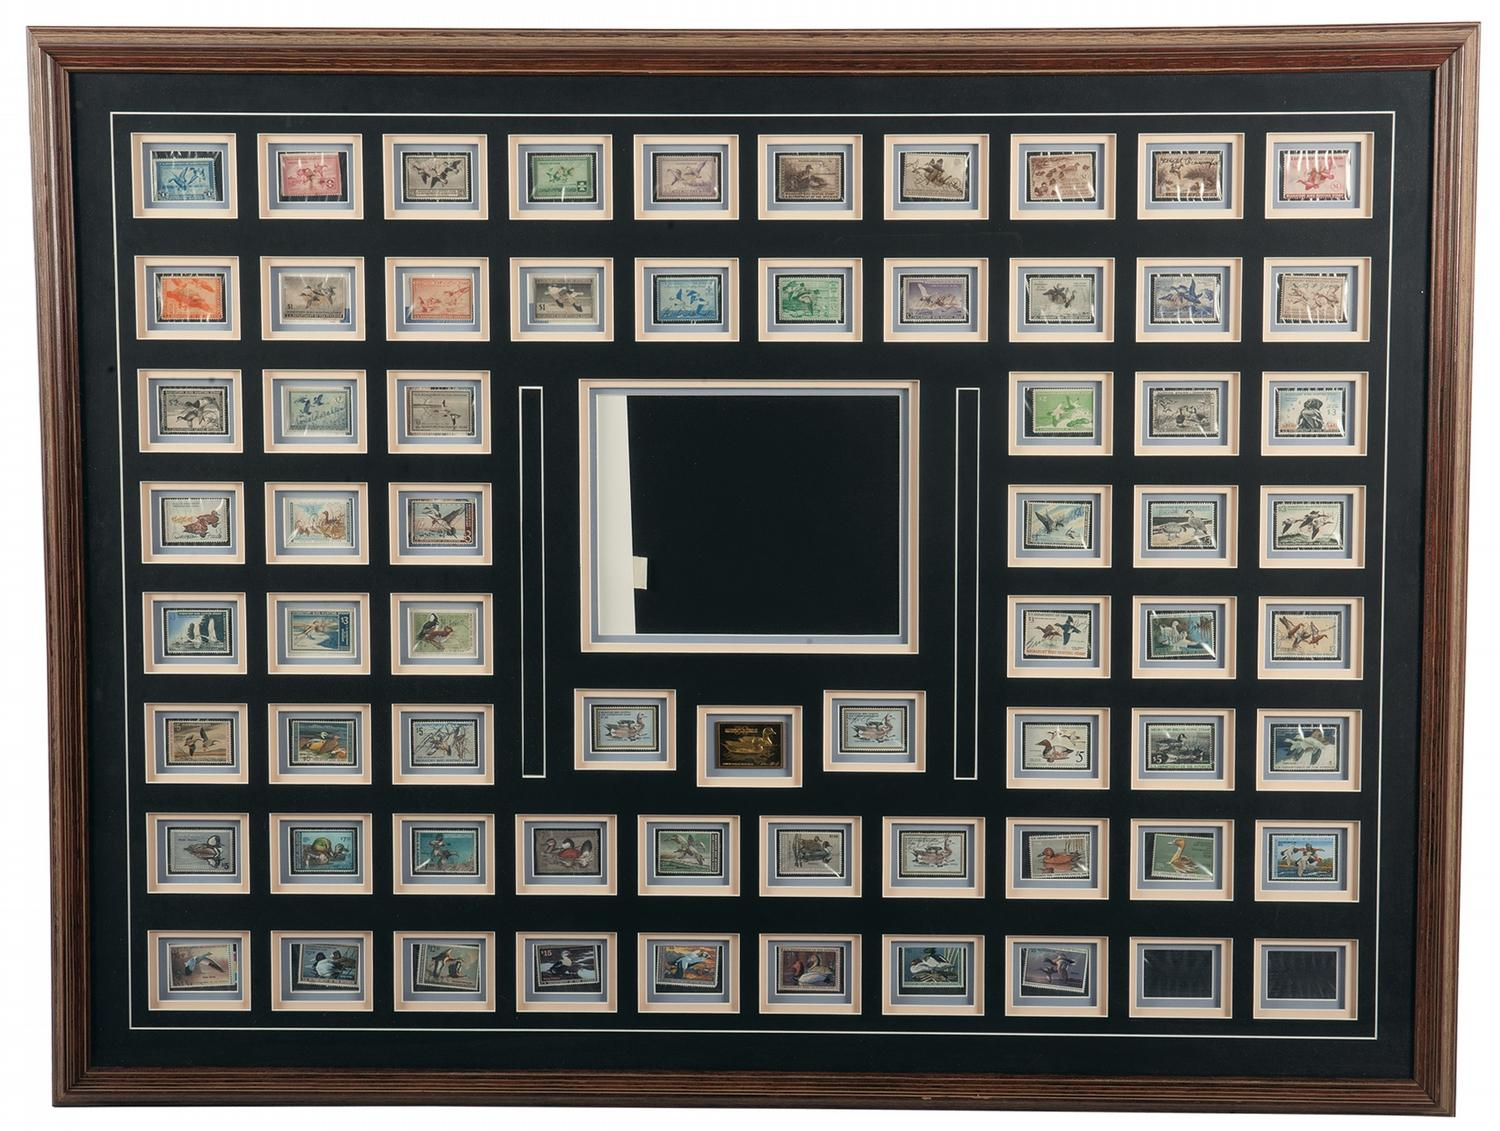 Image 1 50th Anniversary Collection Of Federal Duck Stamps In Display Frame